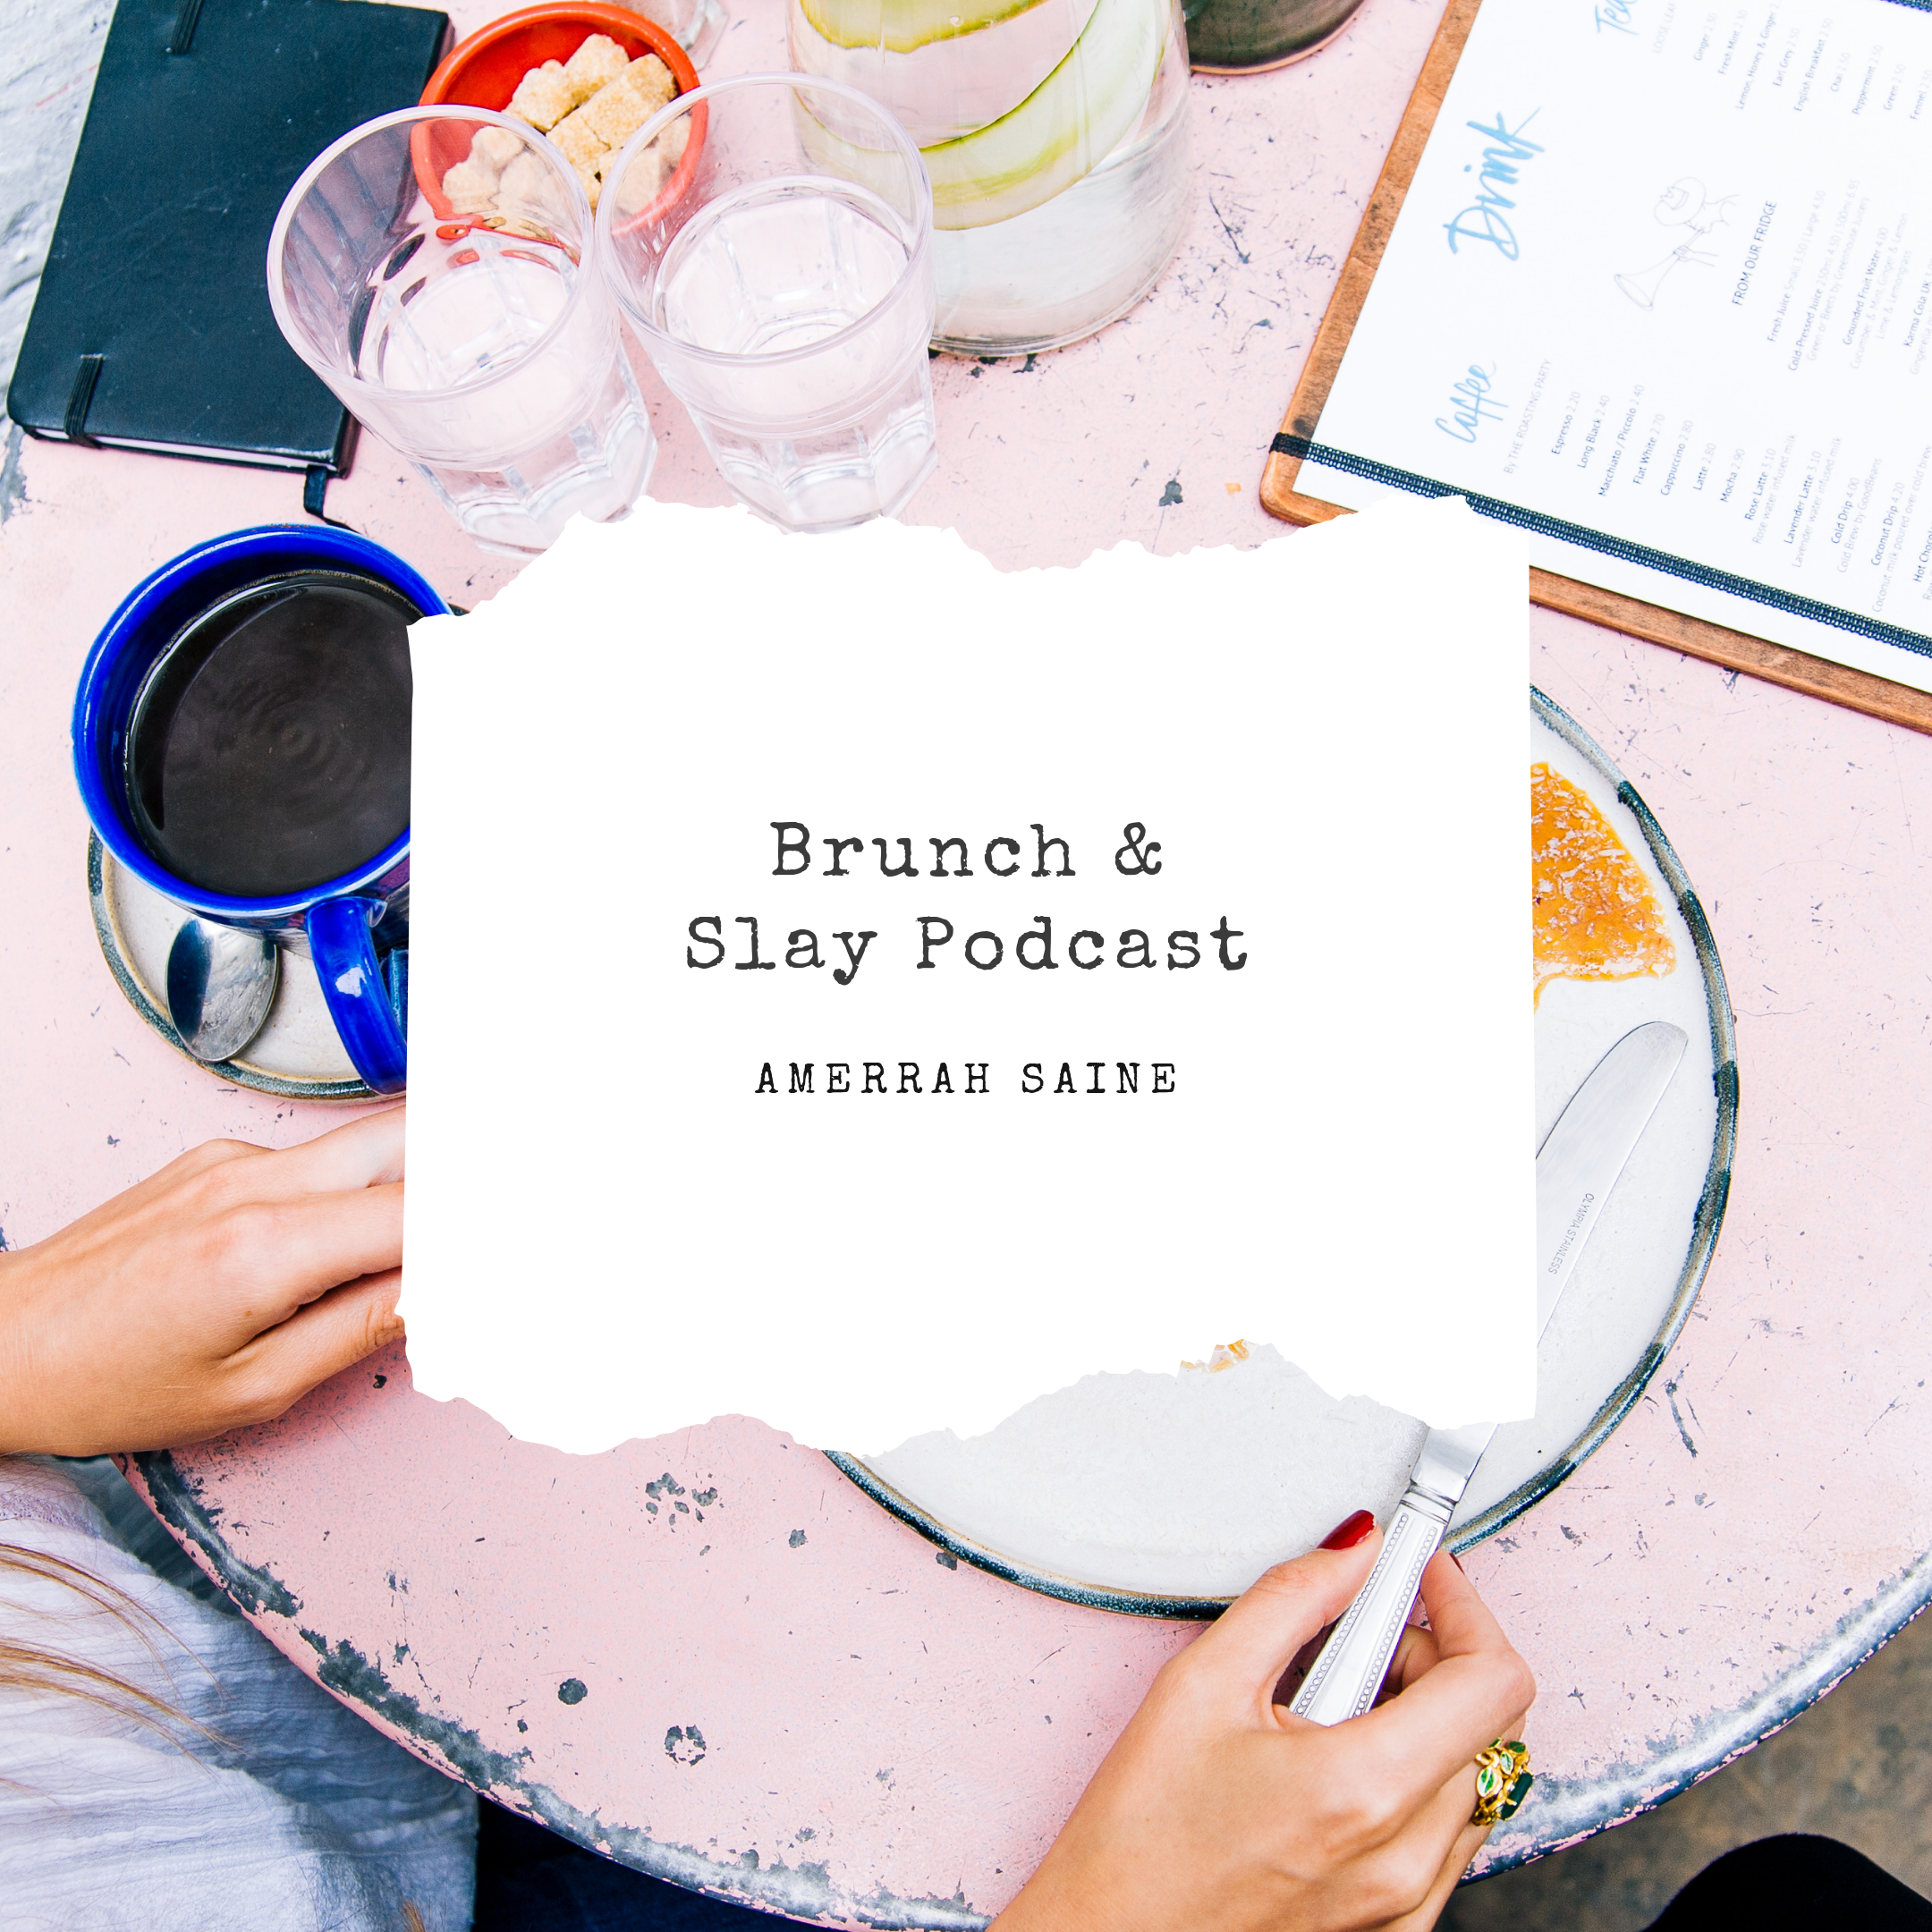 Brunch & Slay Podcast - Listen to Serena share all about her thriving business, The General Store.